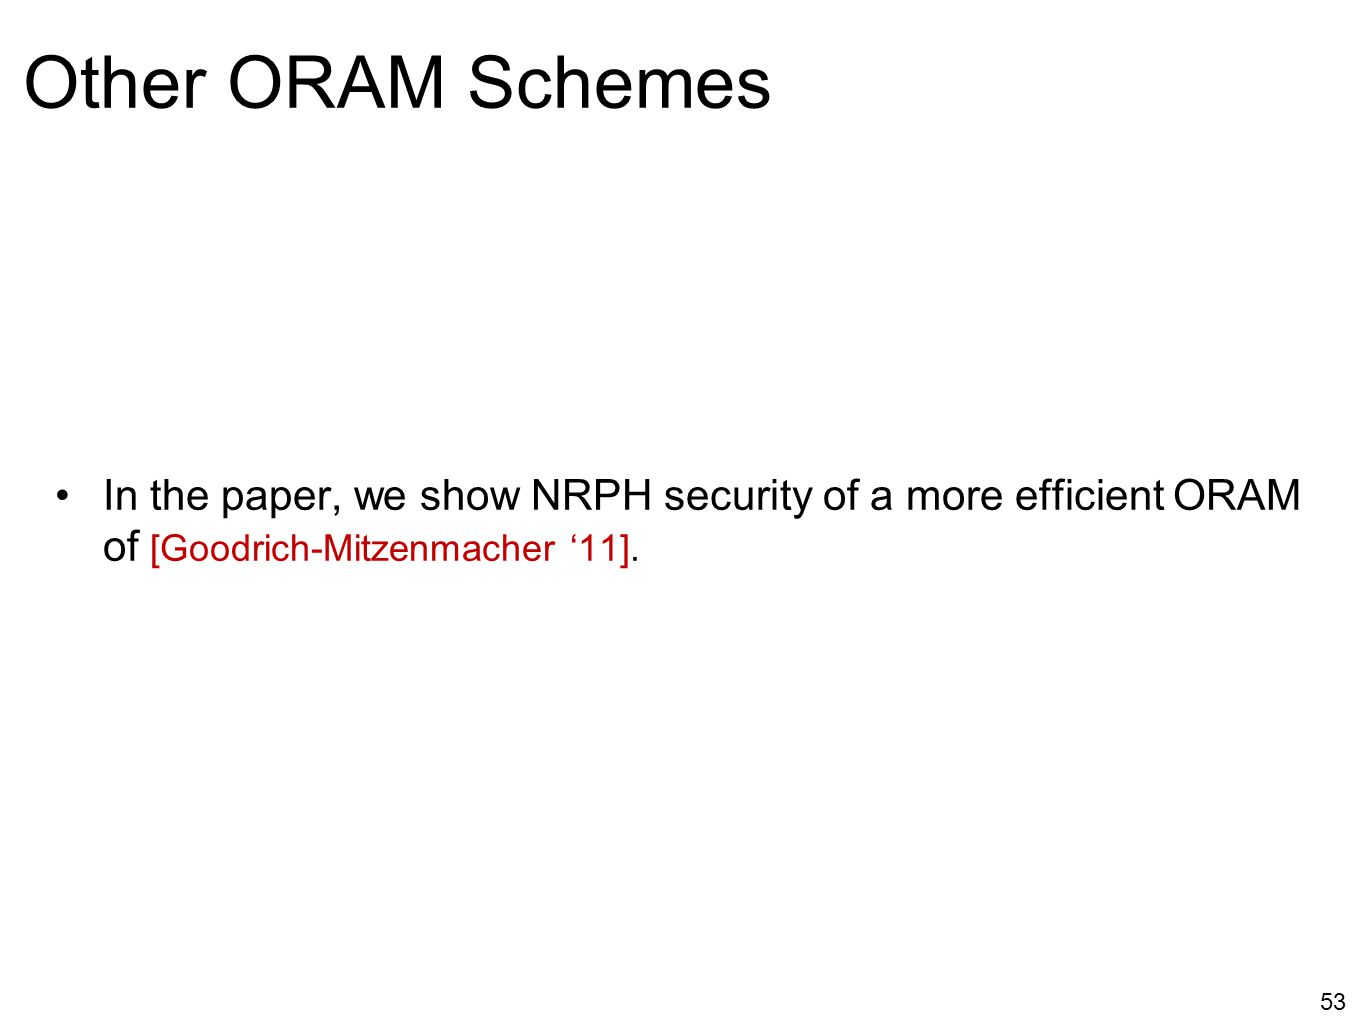 Other ORAM Schemes In the paper, we show NRPH security of a more efficient ORAM of [Goodrich-Mitzenmacher '11].